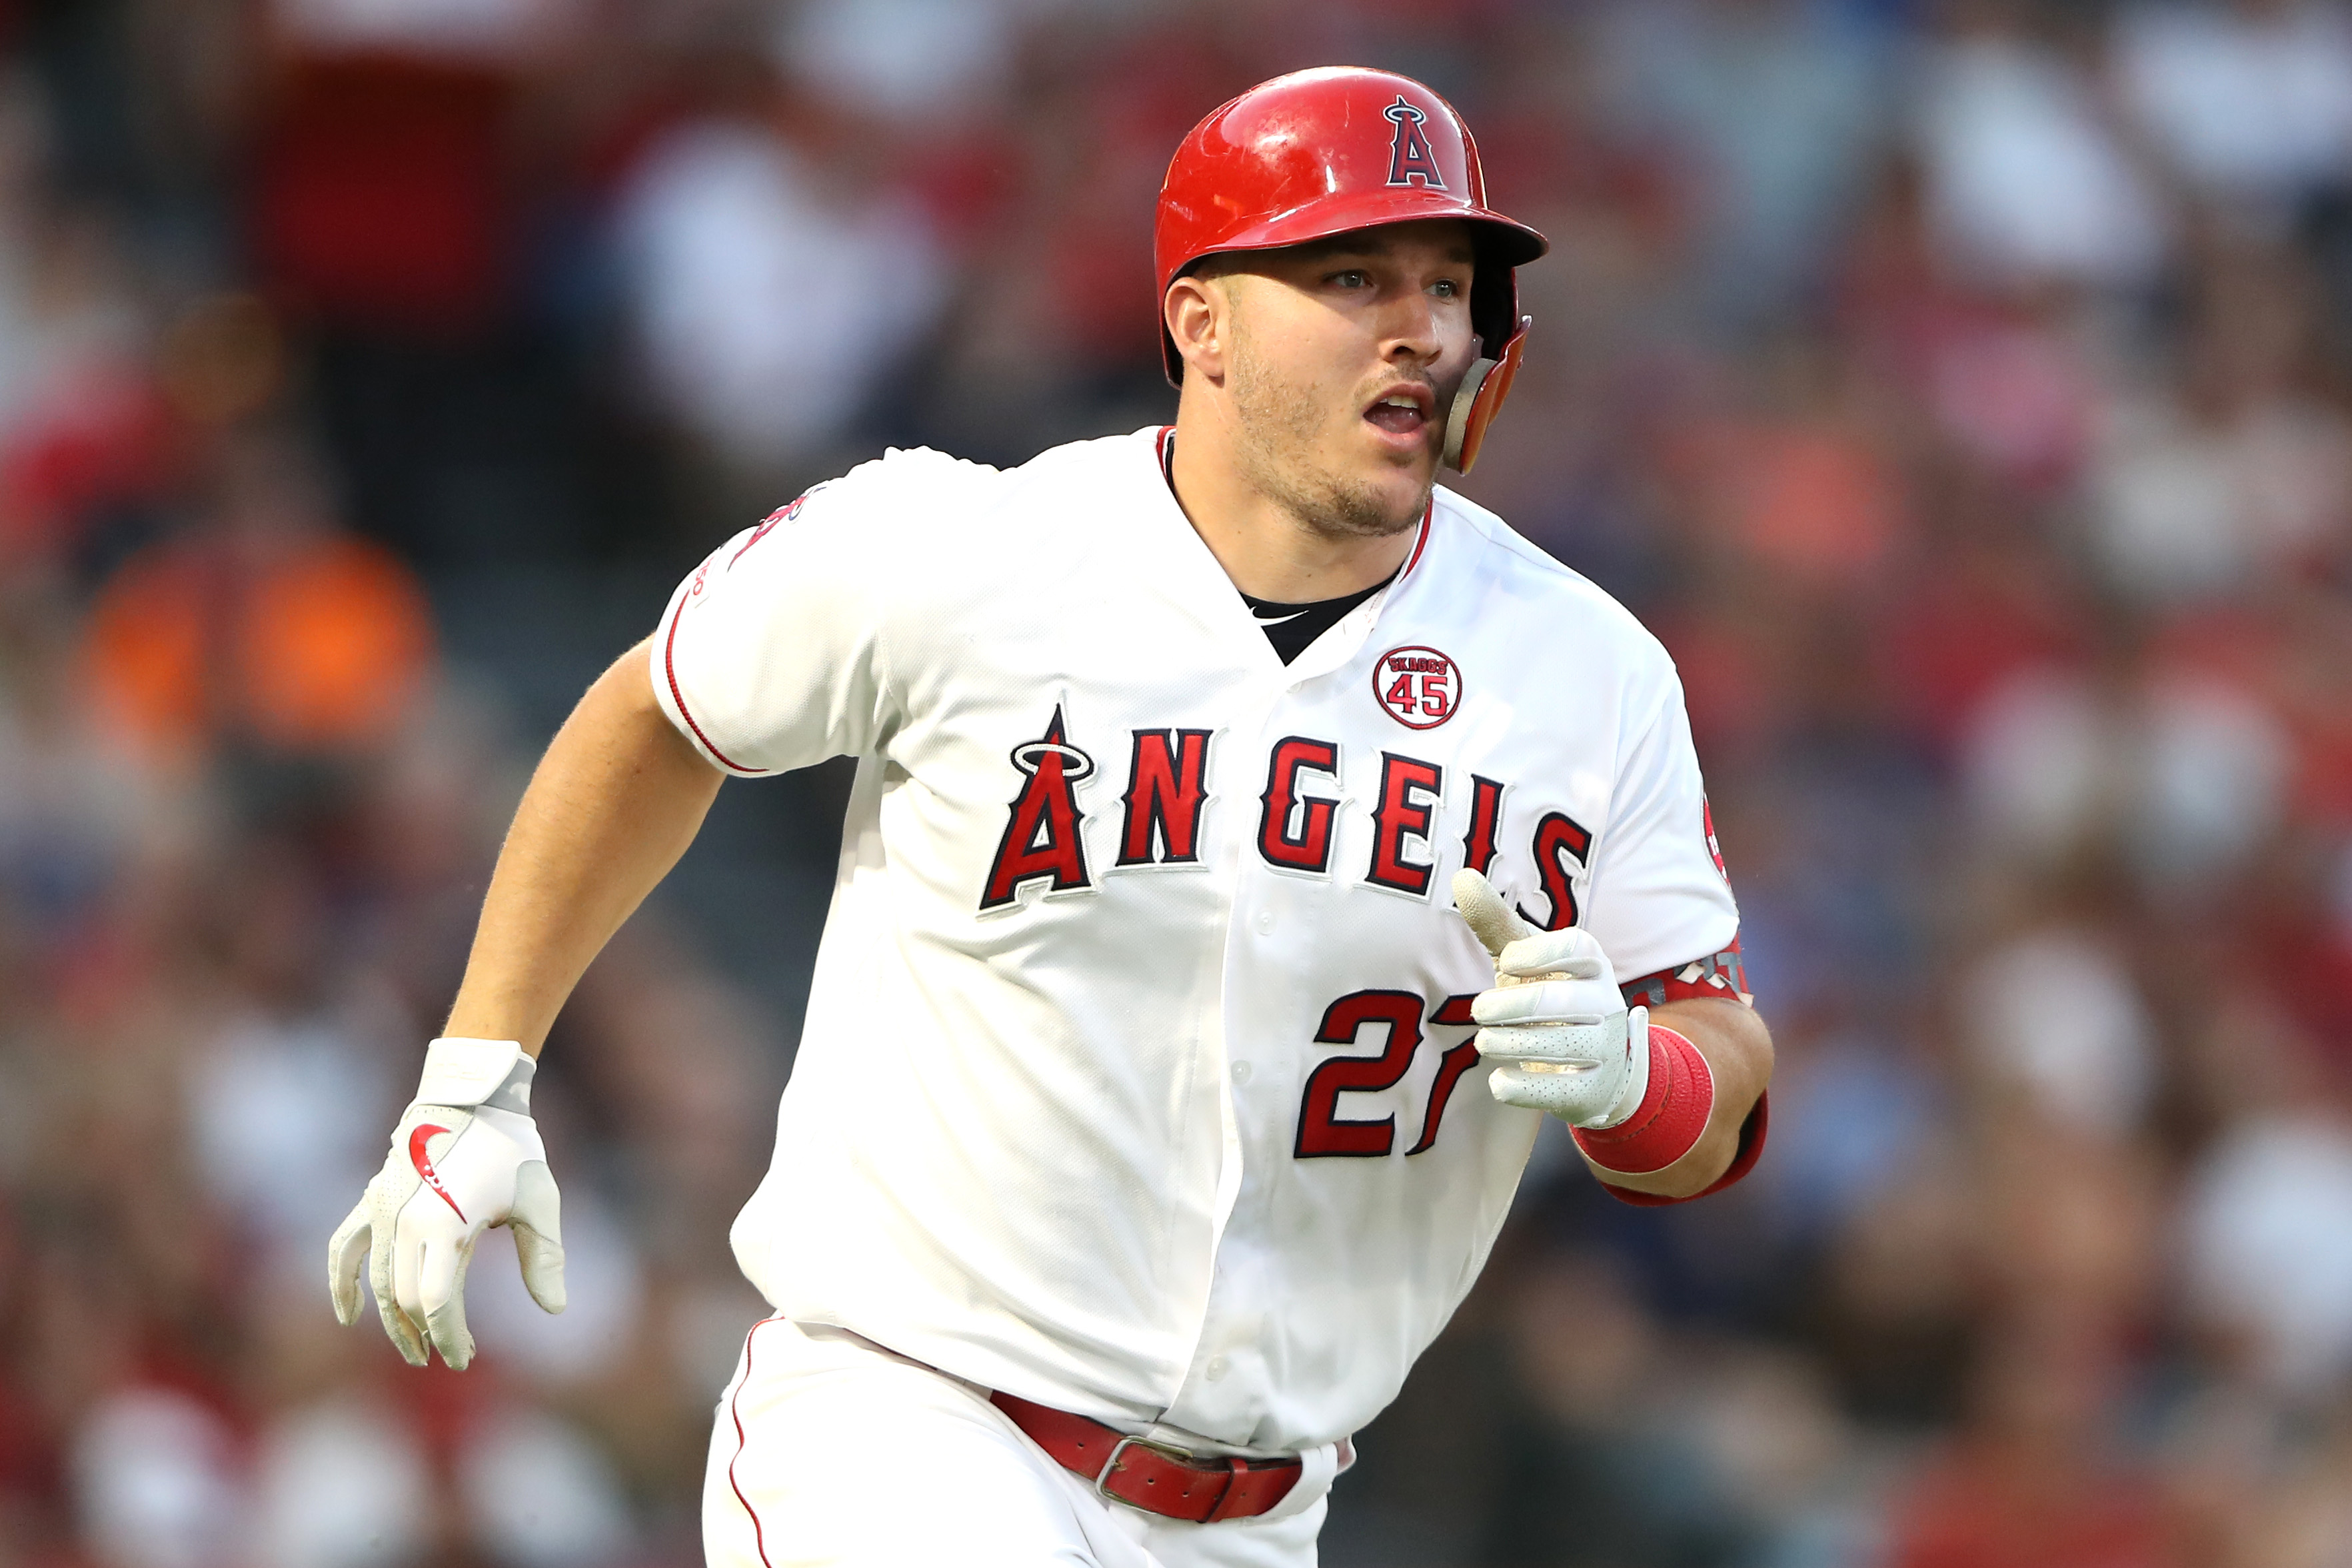 Mike Trout on Astros scandal: